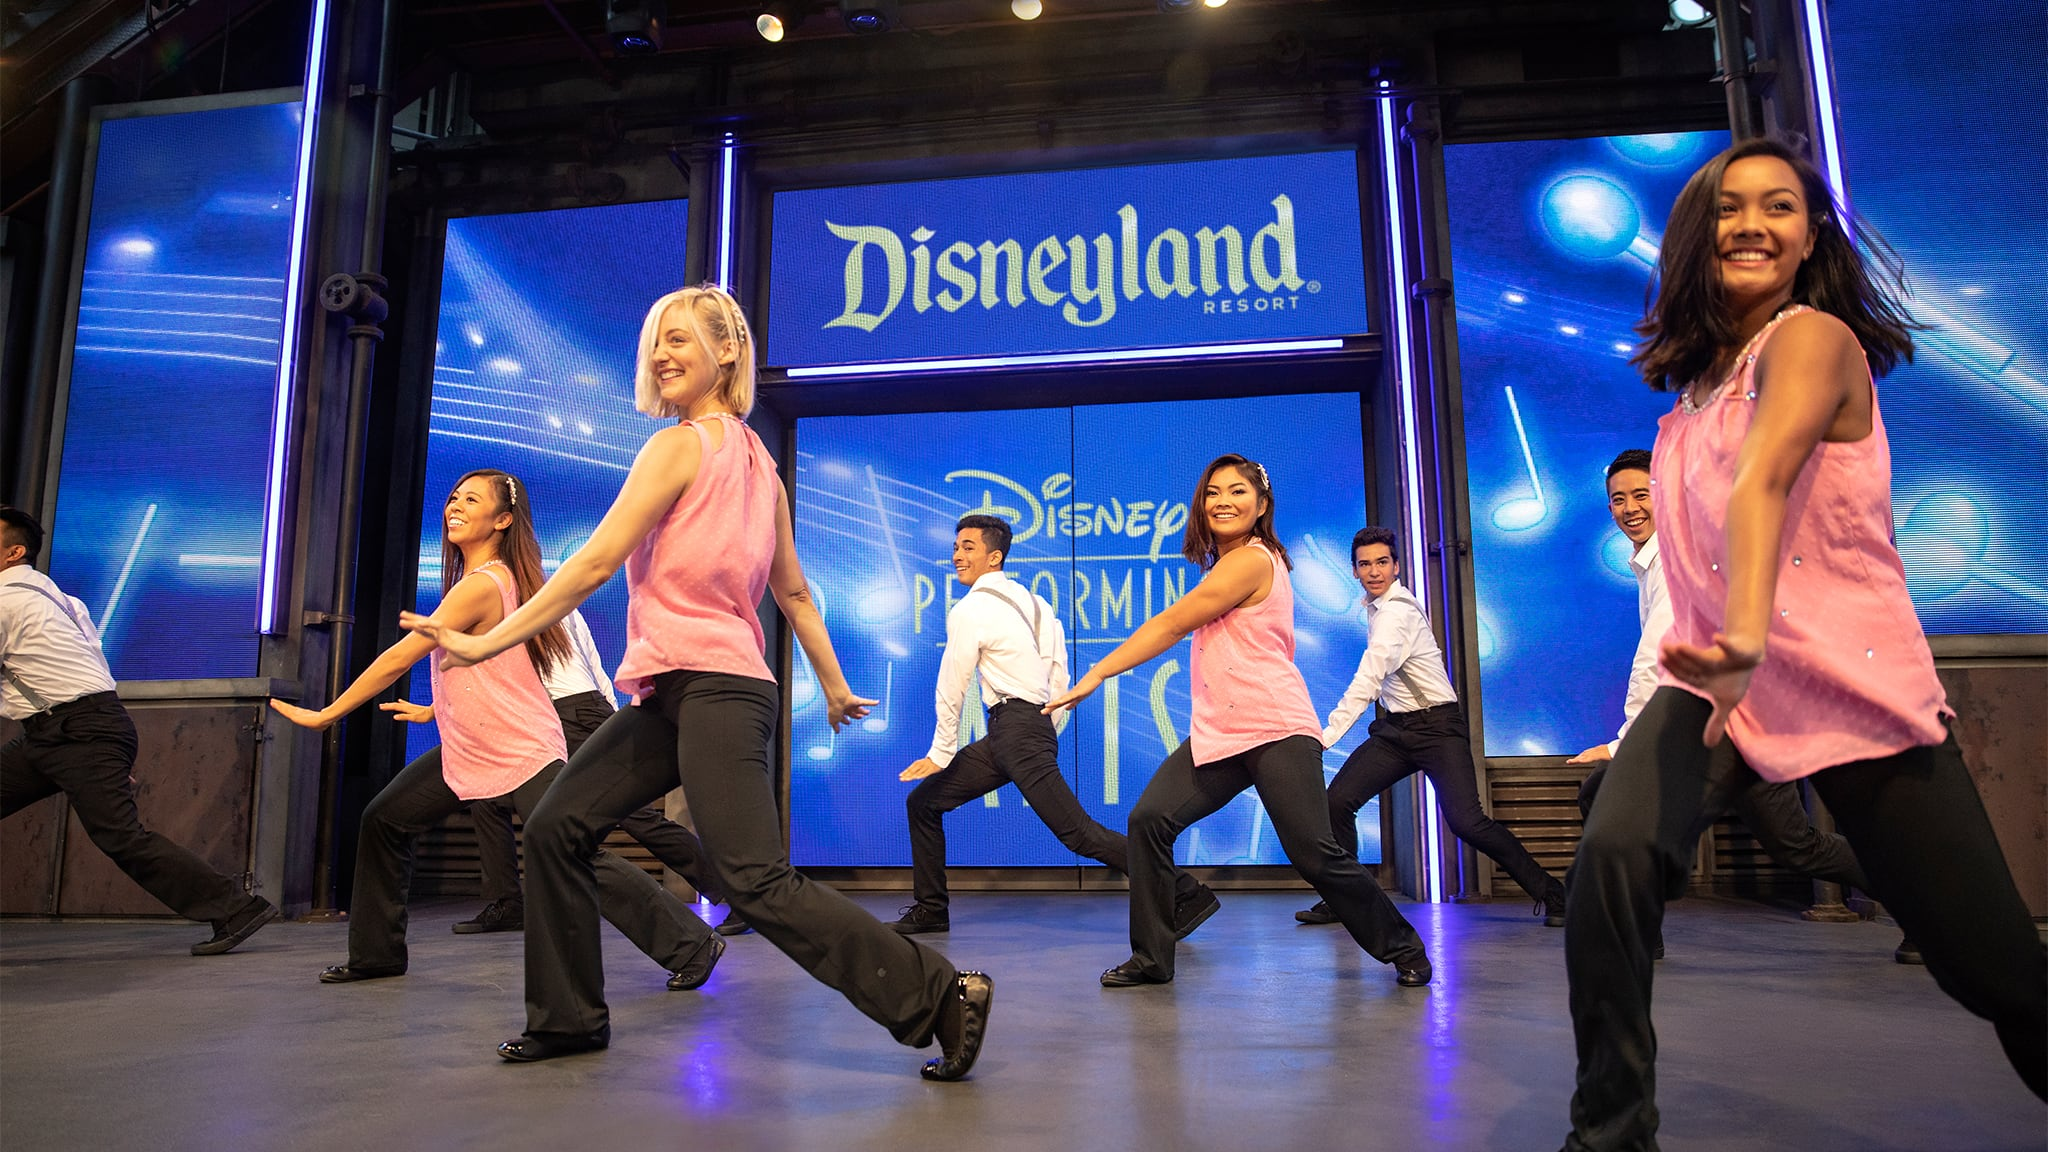 Young men and women dancing in a choreographed routine on a stage with a backdrop reading Disneyland Resort Disney Performing Arts